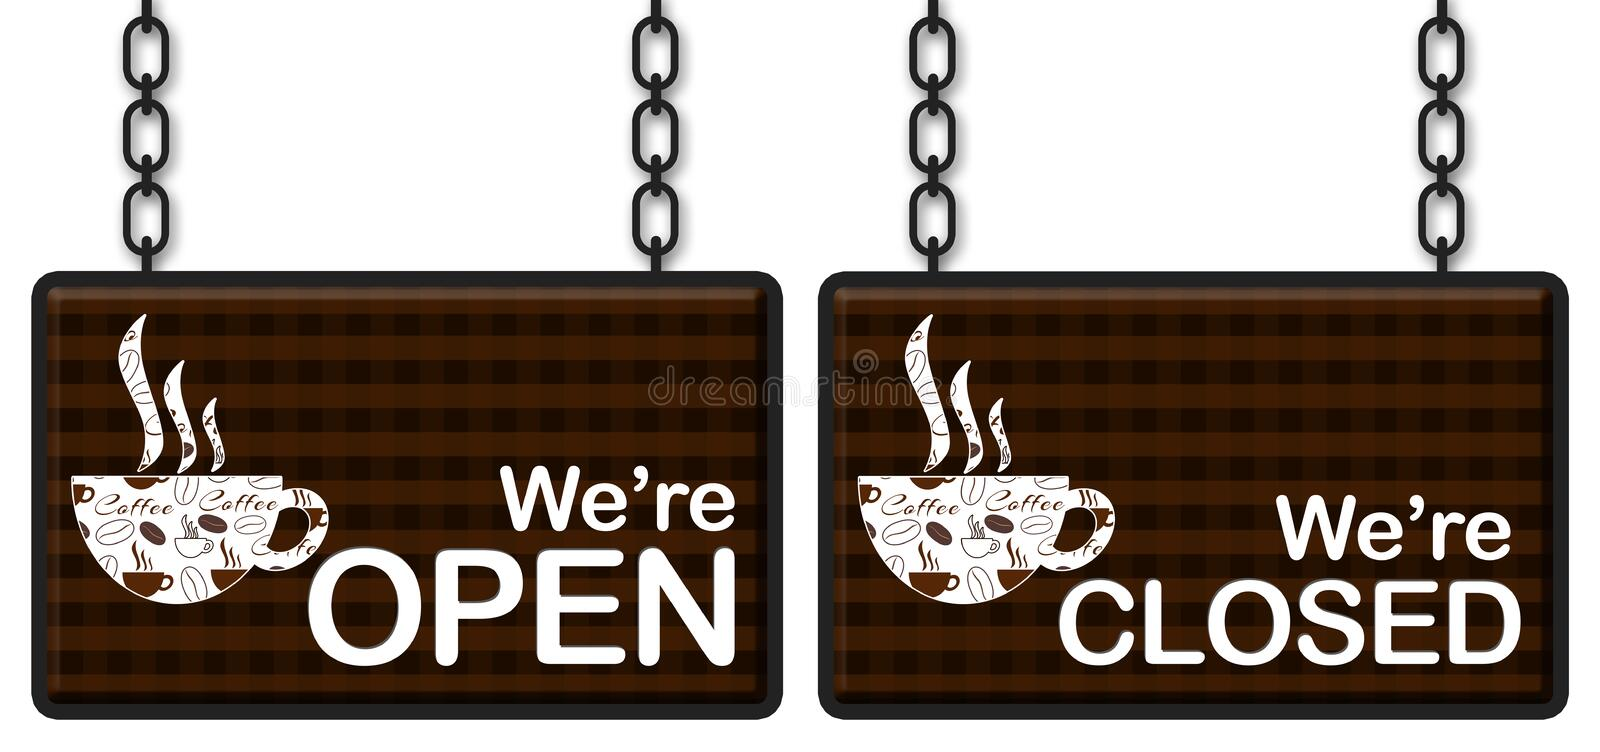 Coffee Open Closed royalty free illustration